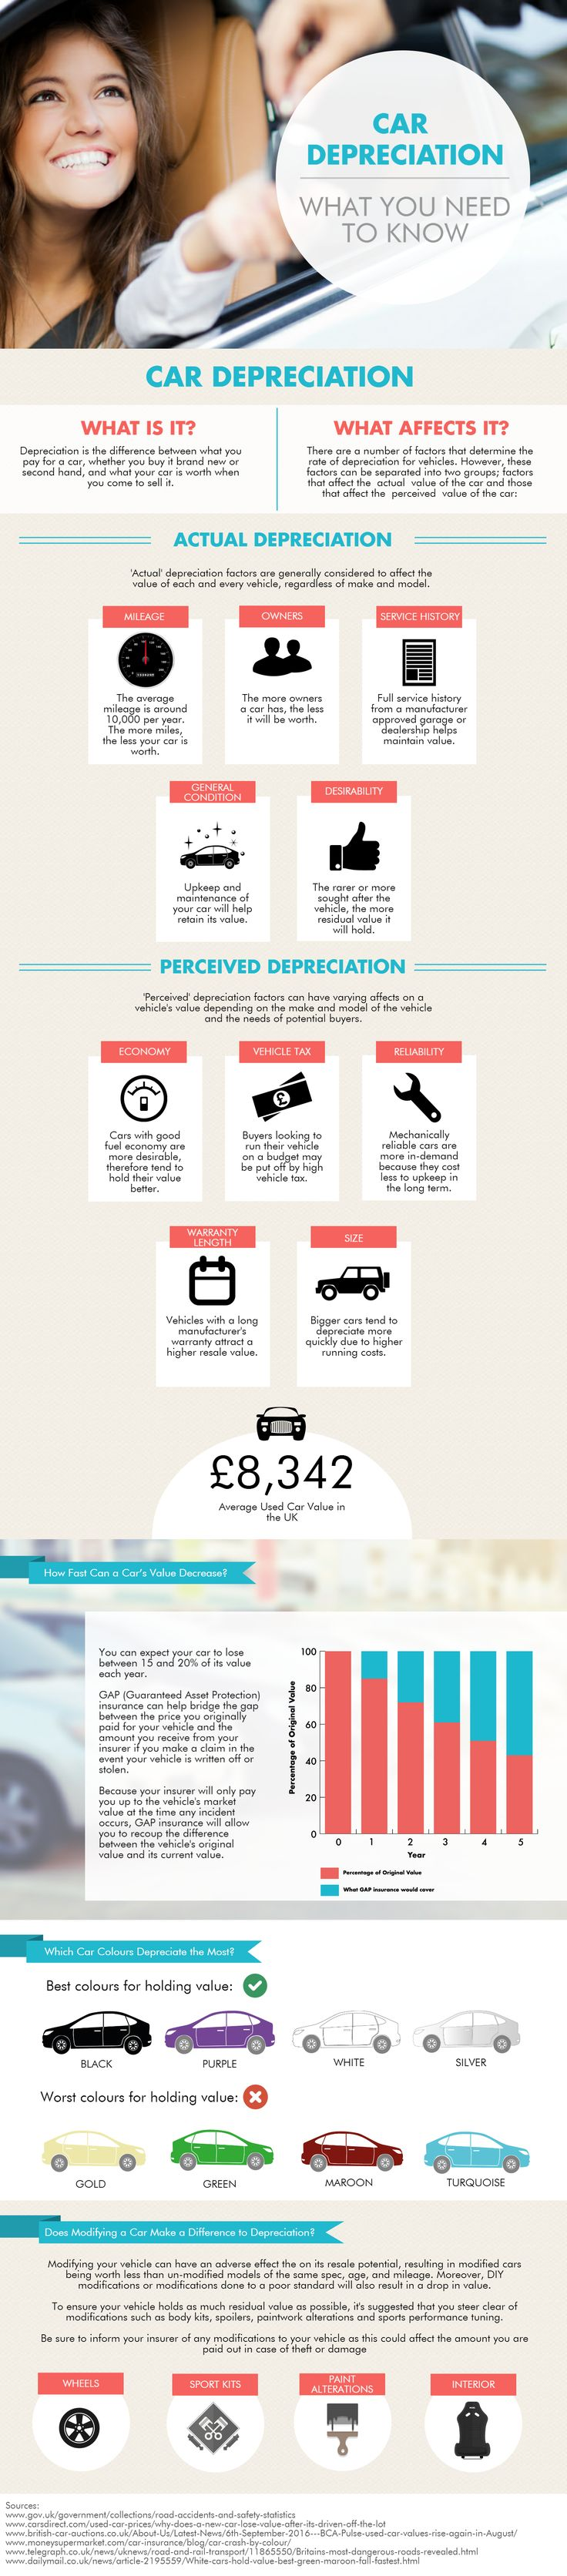 Car Depreciation - What You Need to Know #Infographic #Cars #Transportation